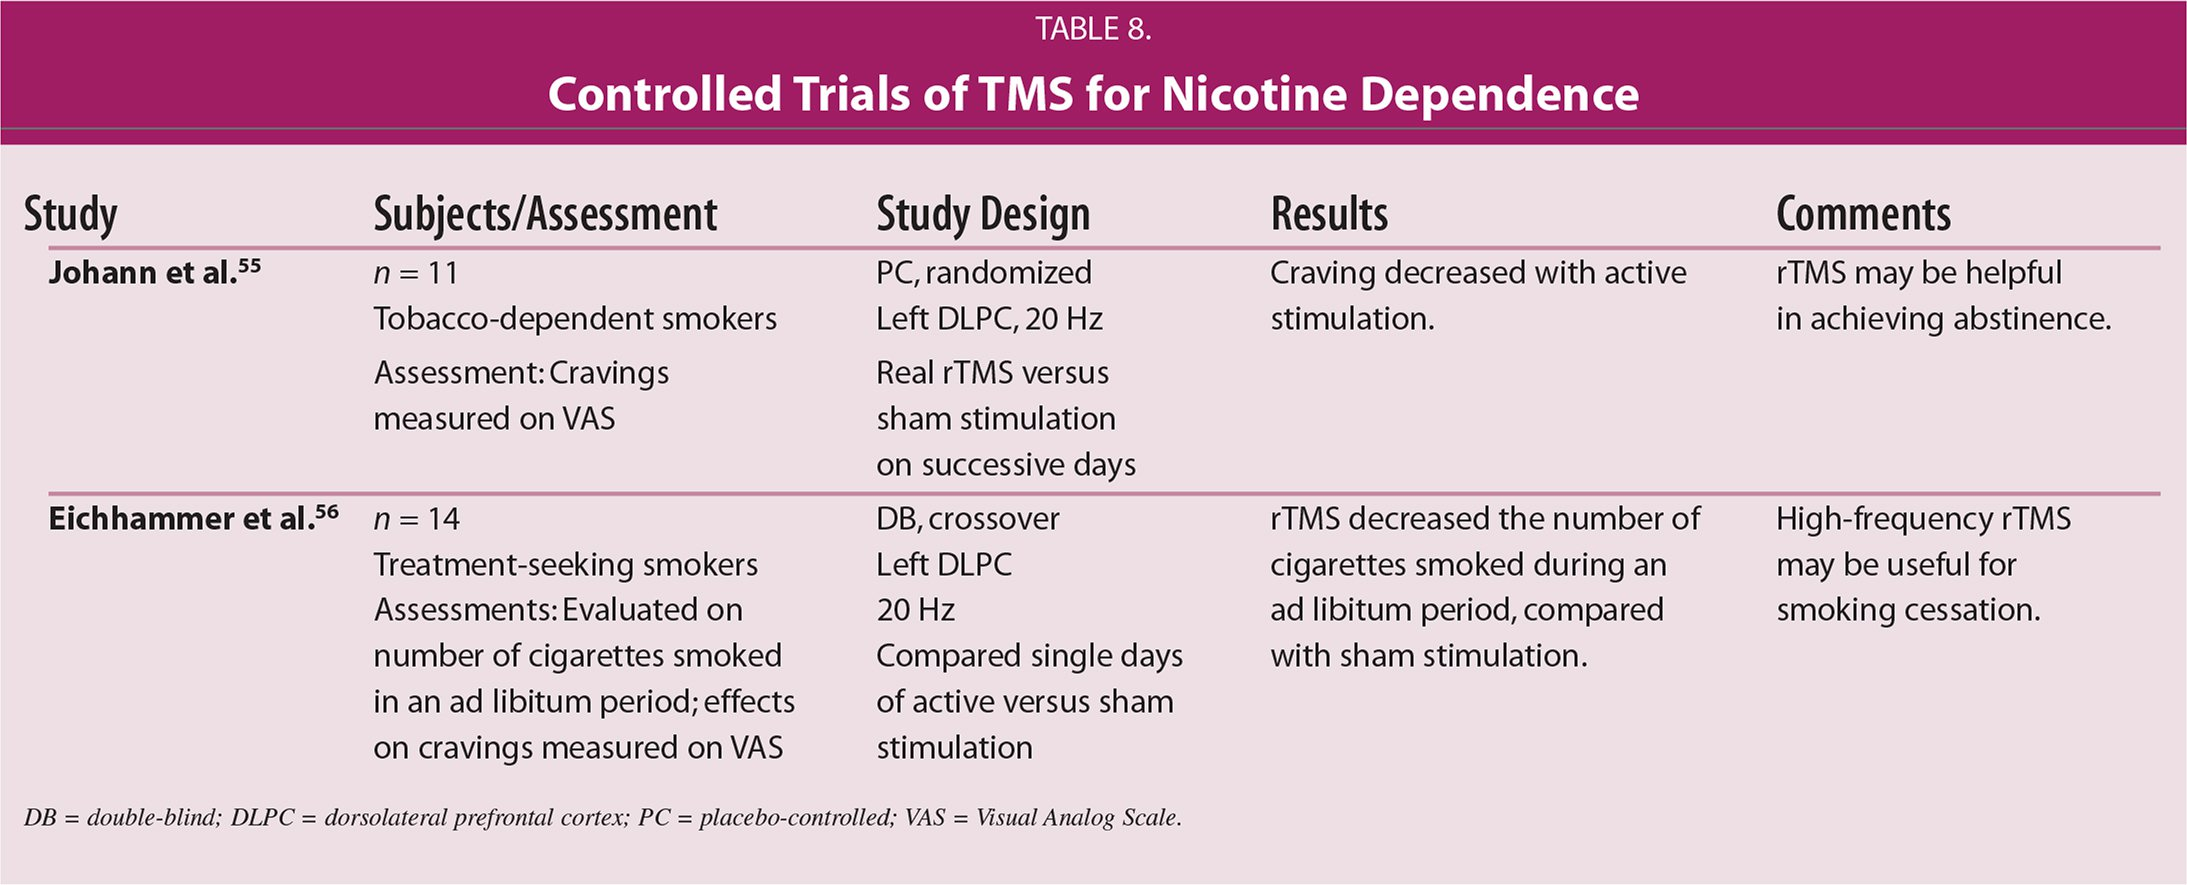 Controlled Trials of TMS for Nicotine Dependence